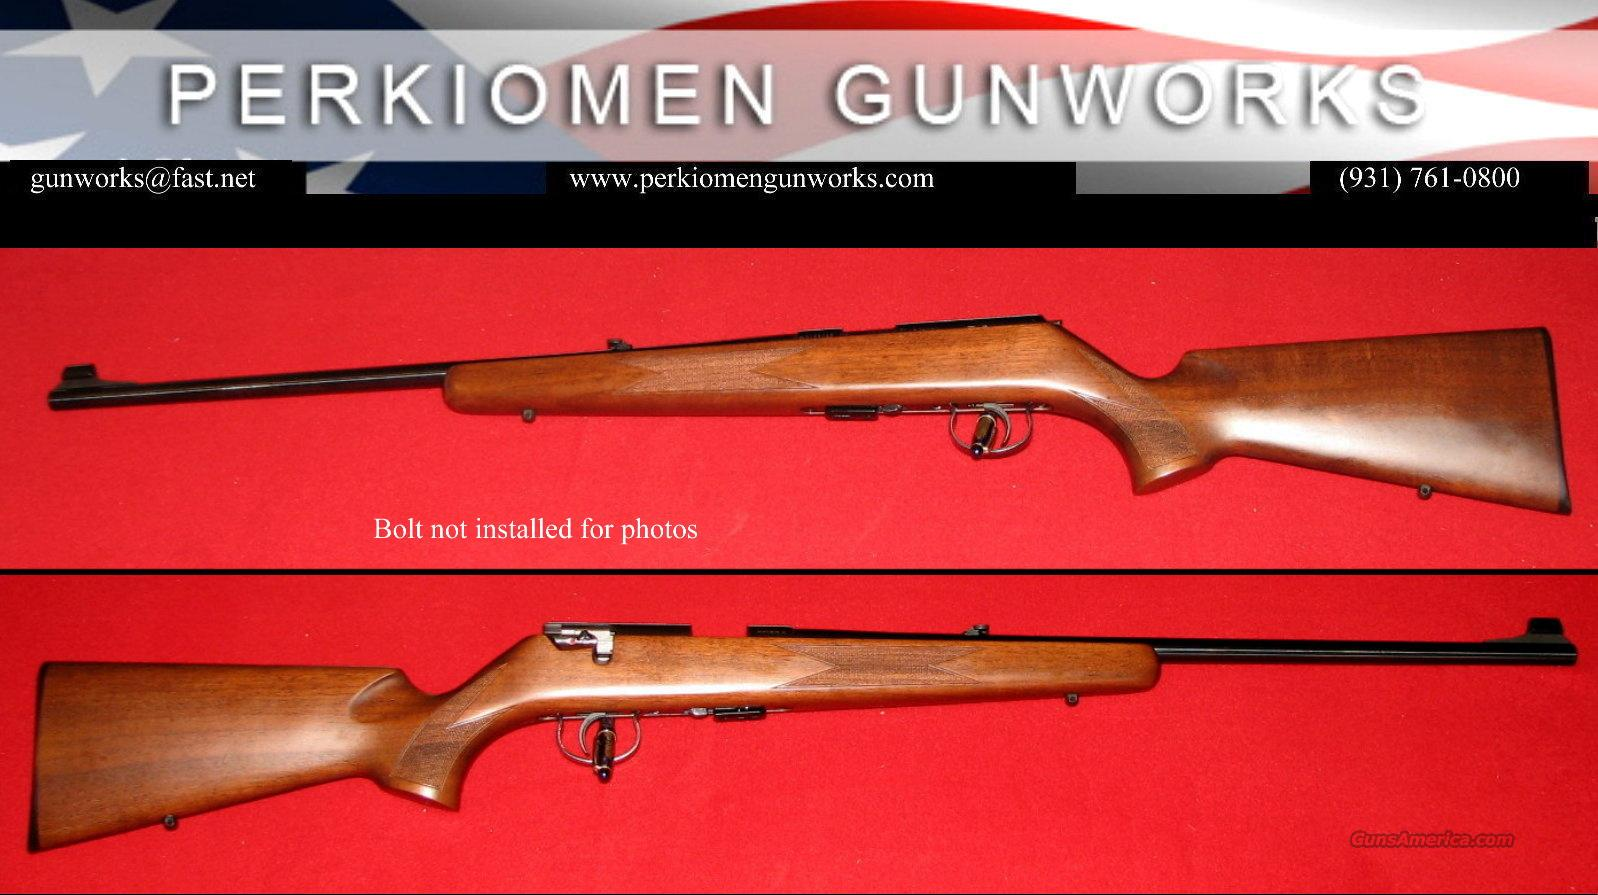 "1416 D KL Classic 23"", .22LR - New in Box  Guns > Rifles > Anschutz Rifles"